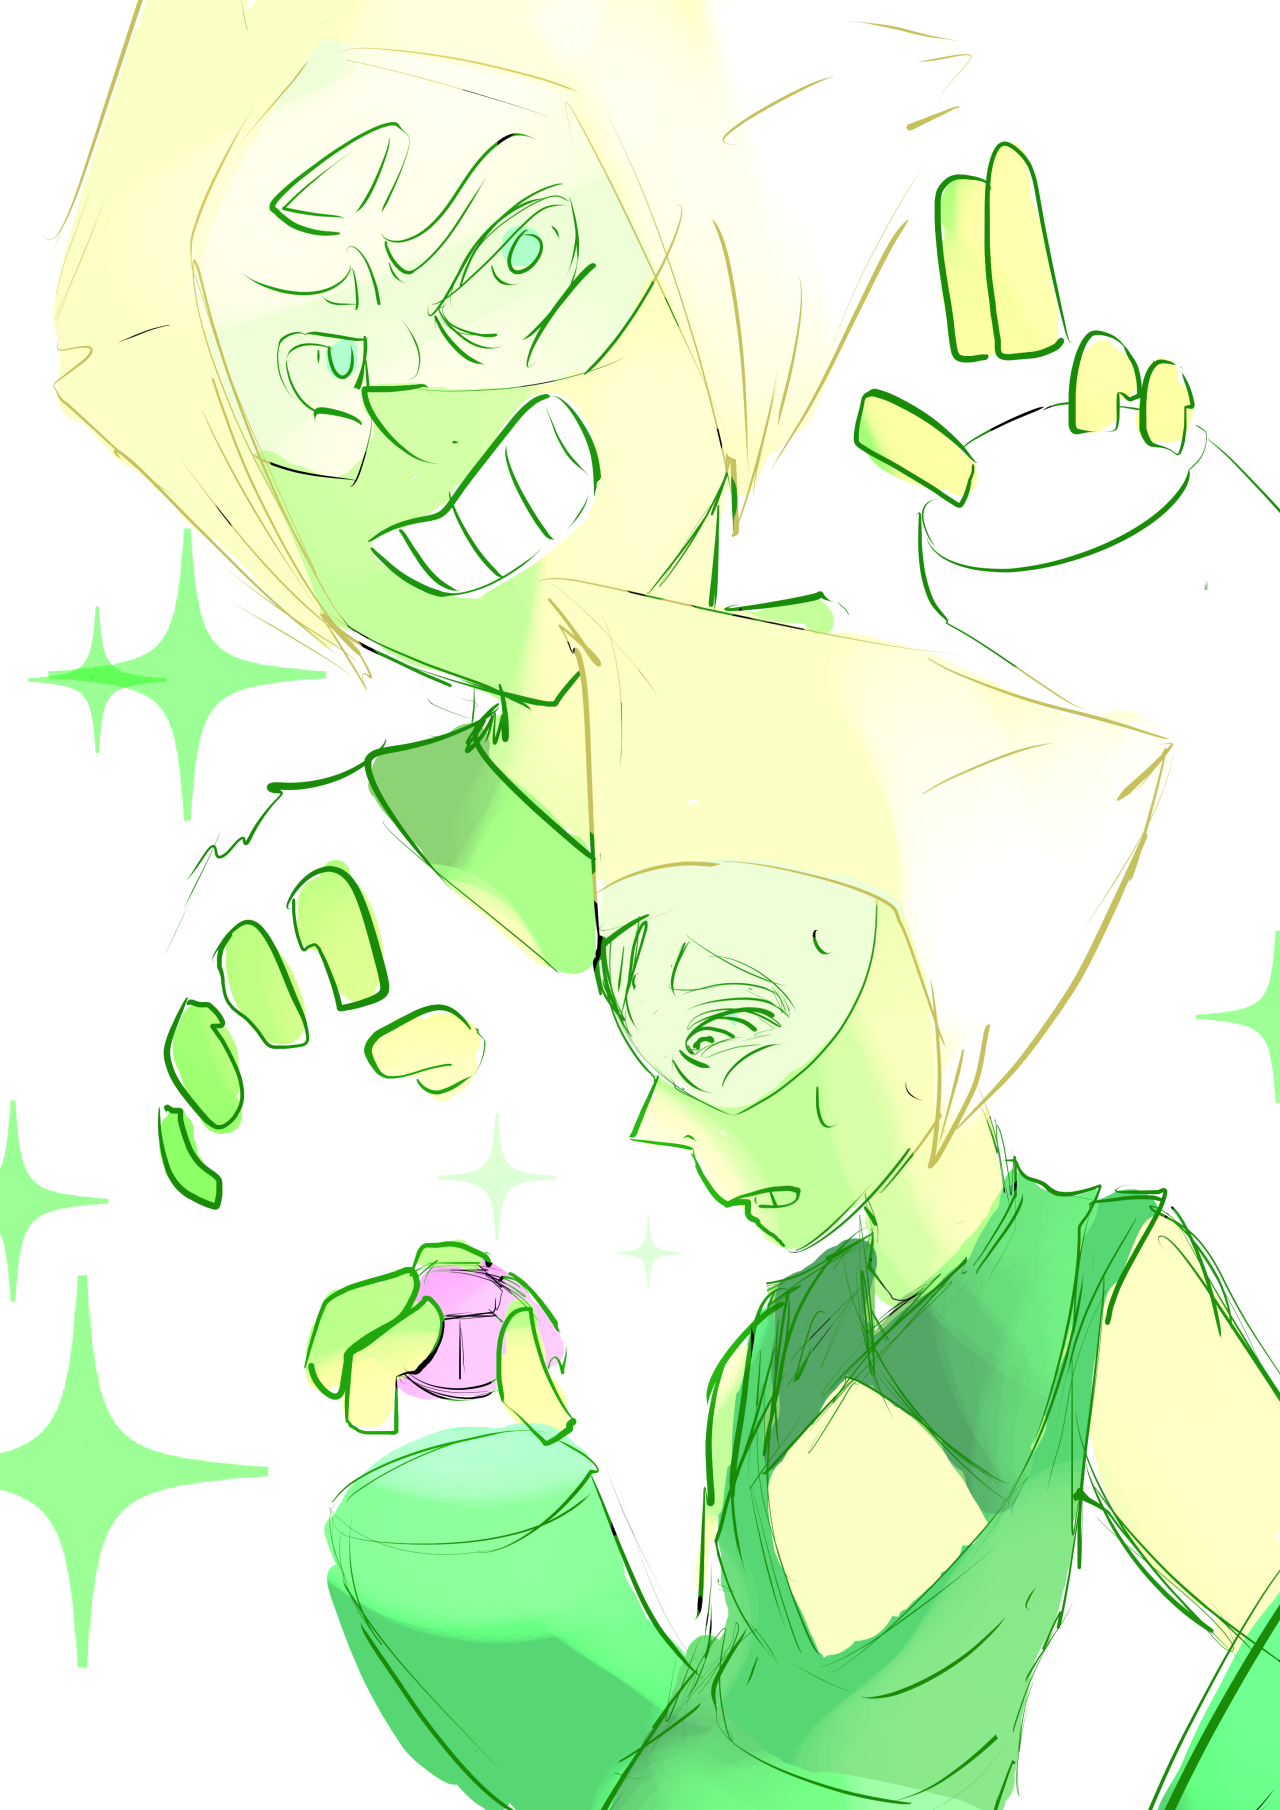 i'd be lying if i said i didn't miss peridot's limb enhancers